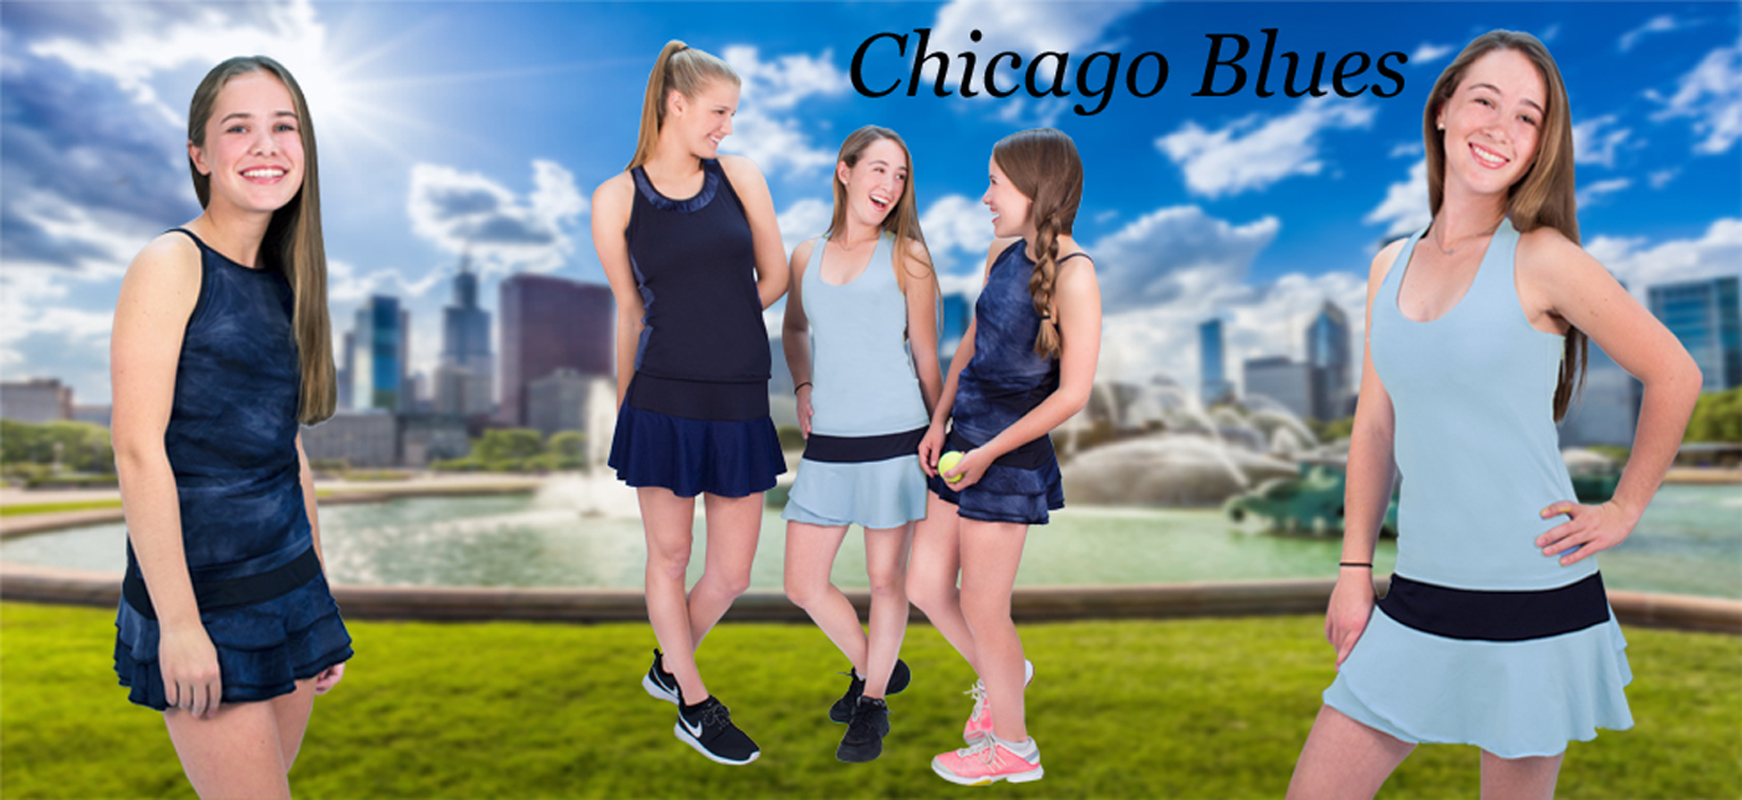 chicago-blues-banner-blurred-1700x800.jpg